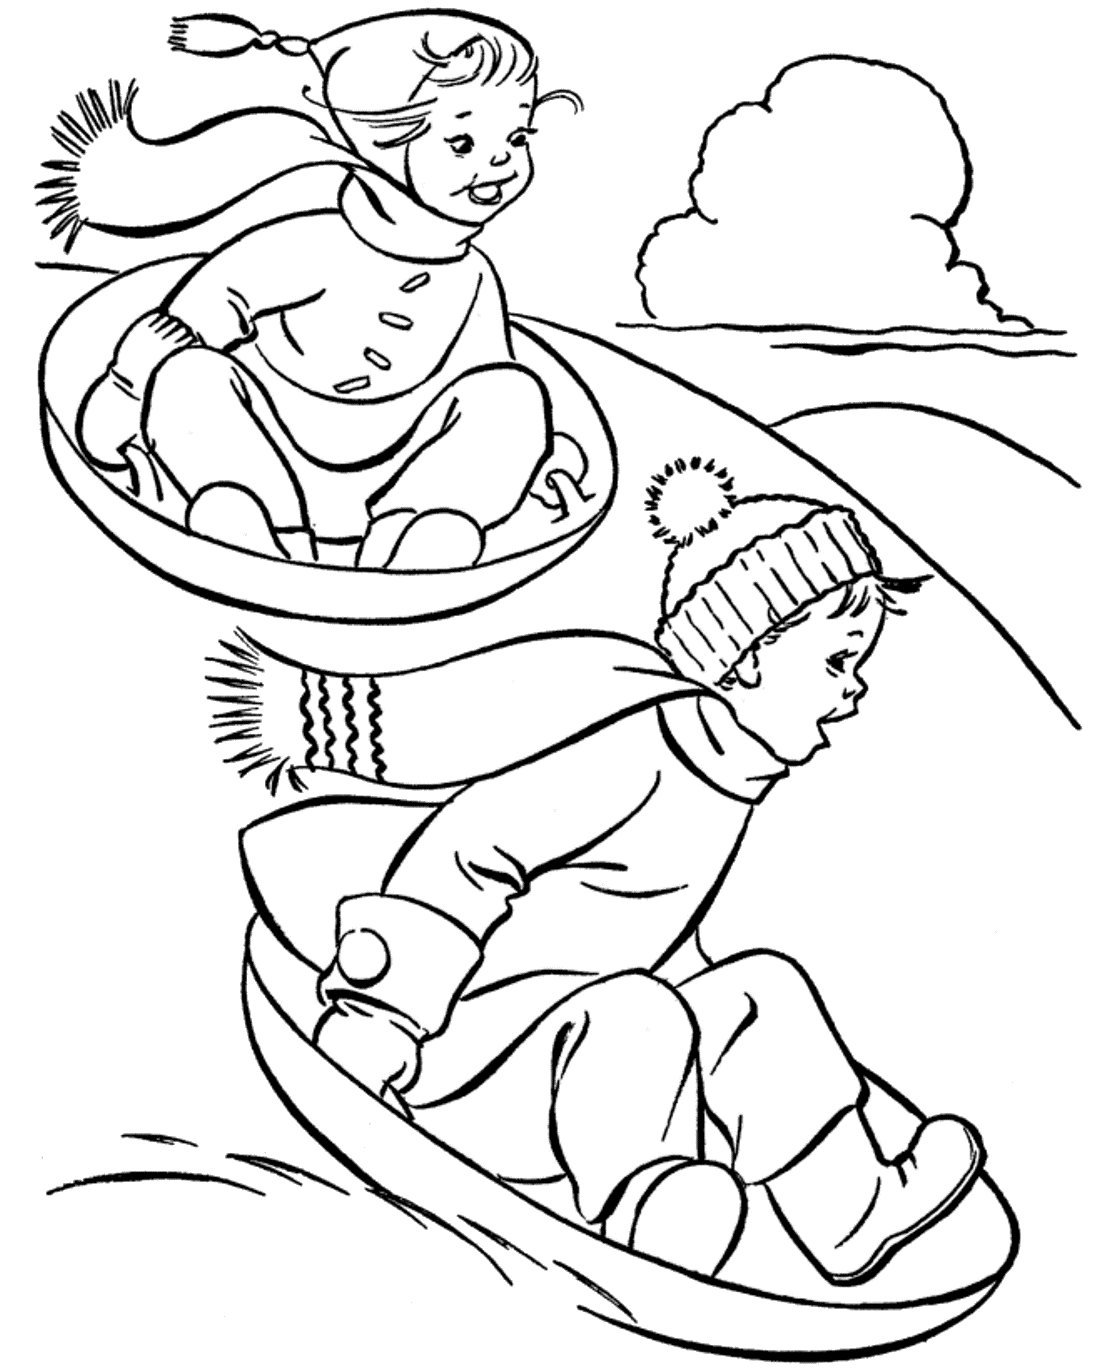 winter coloring sheets winter puzzle coloring pages printable winter themed winter coloring sheets